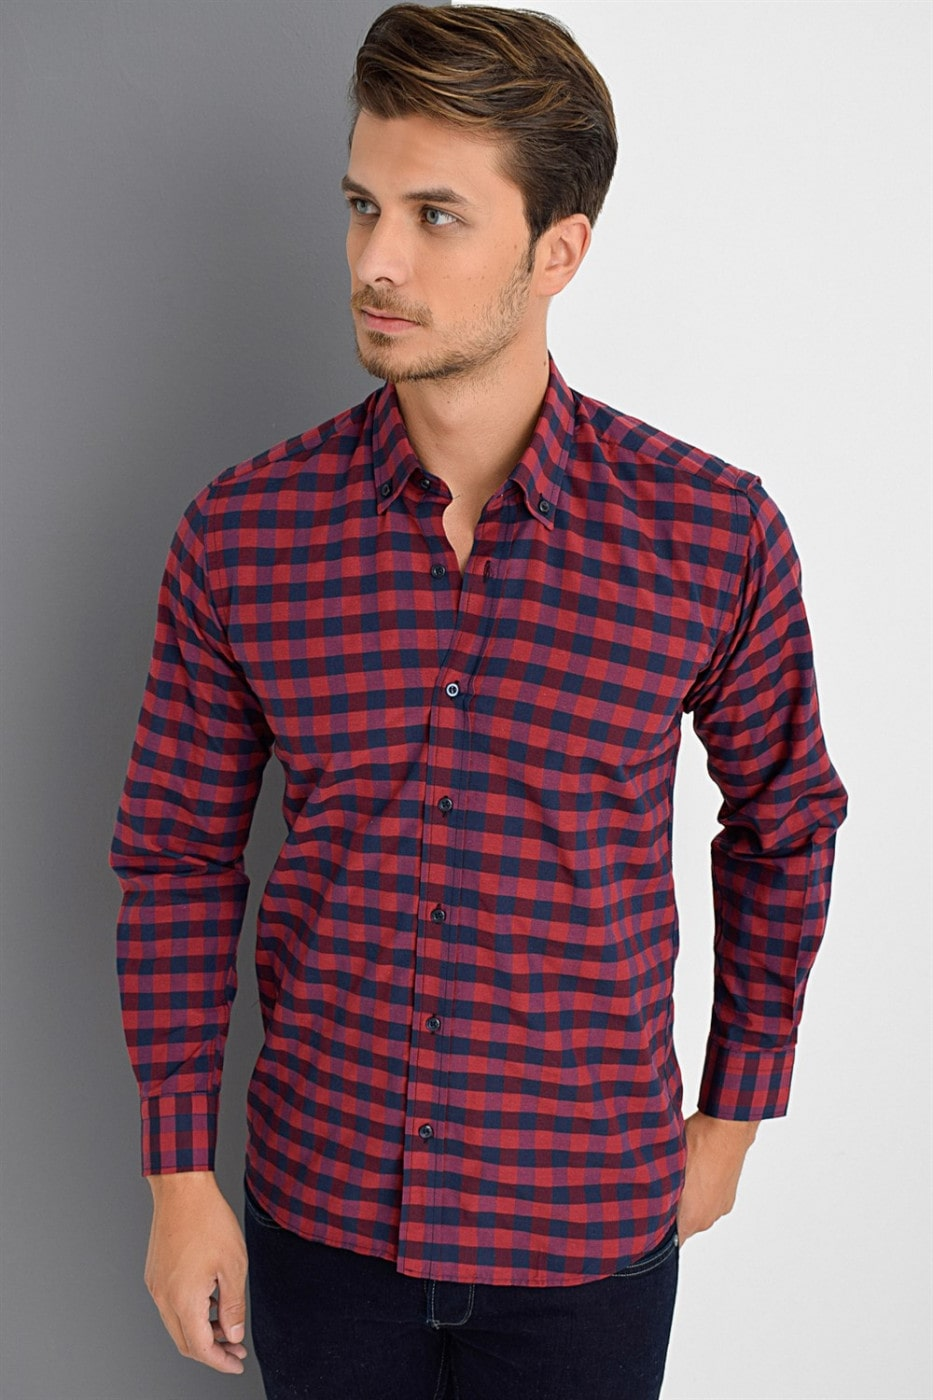 G629 DEWBERRY SHIRT-BURGUNDY